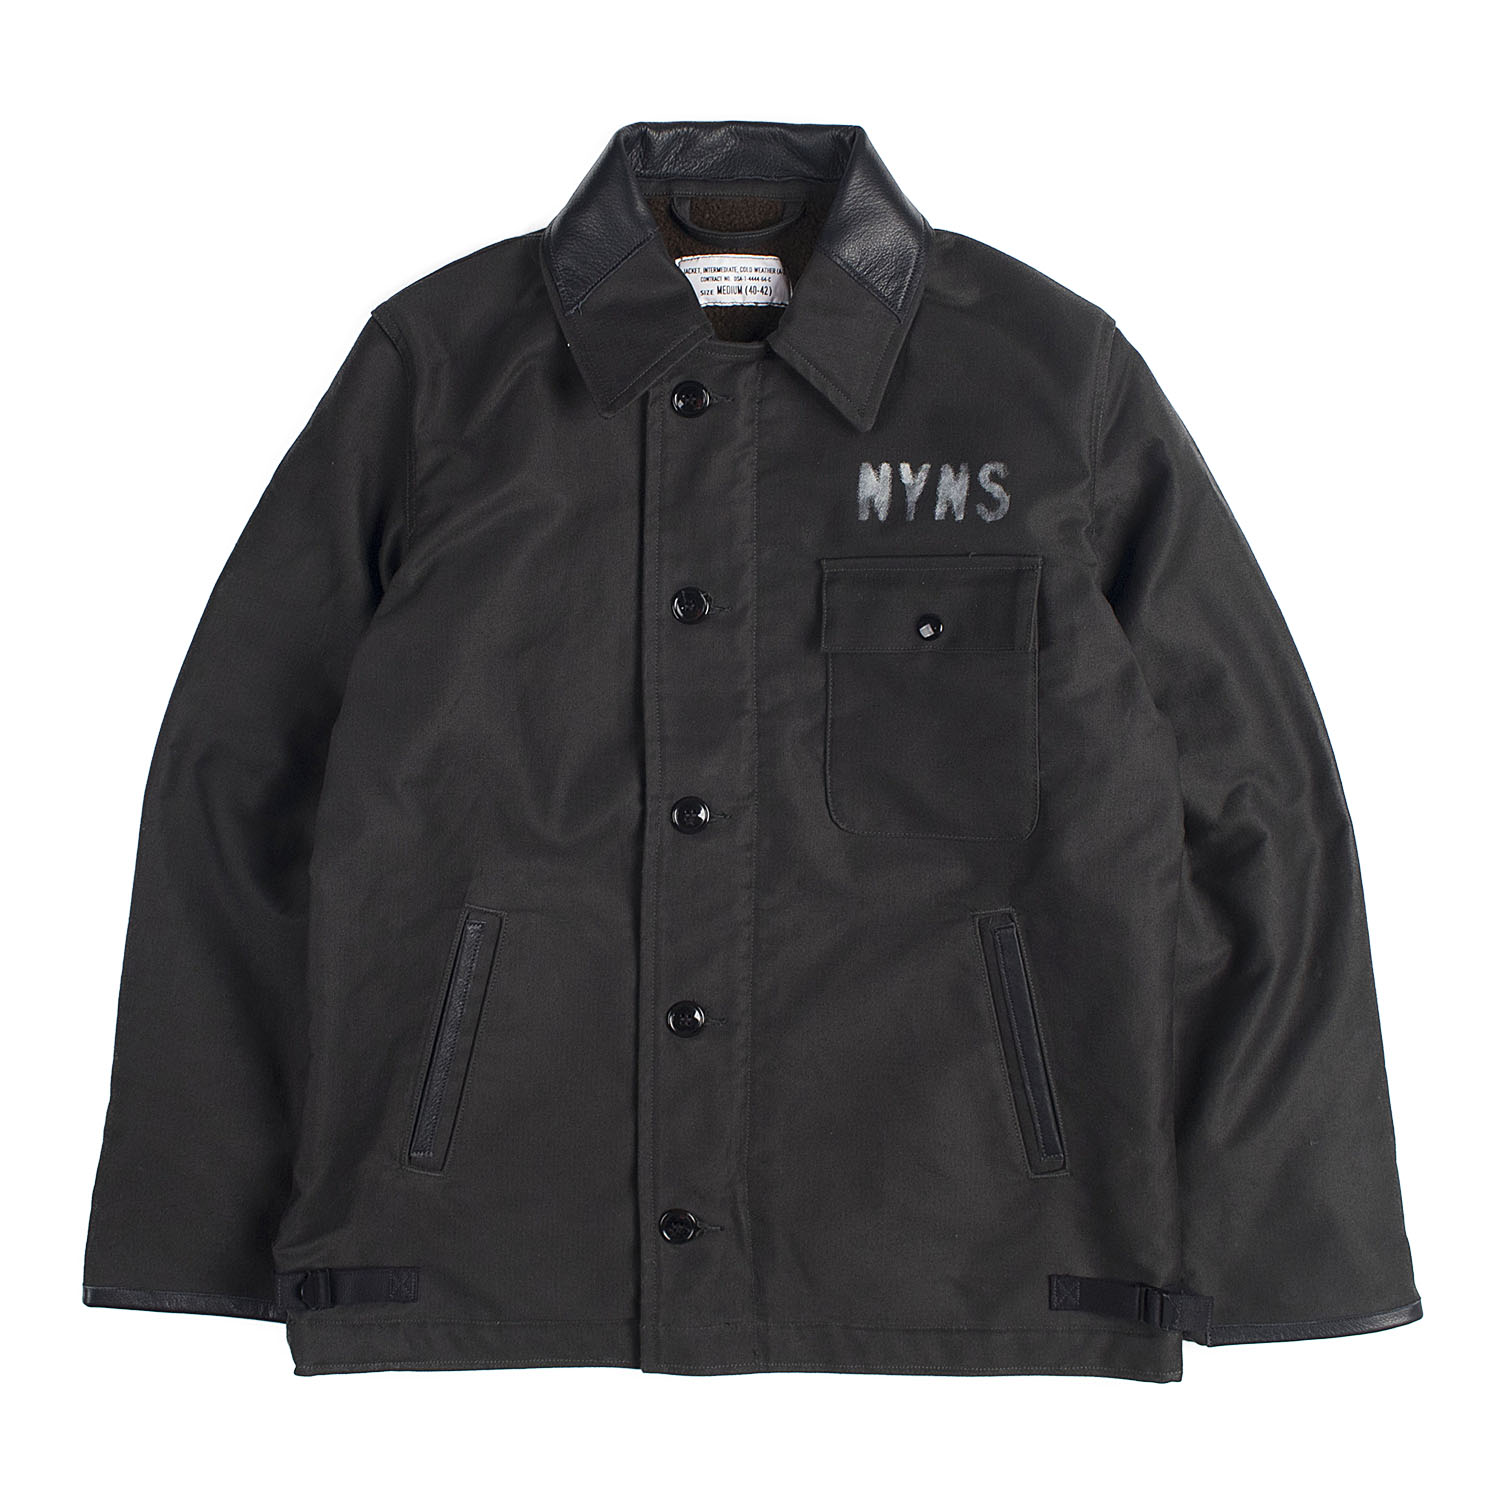 A-2 Deck Jacket (Black)